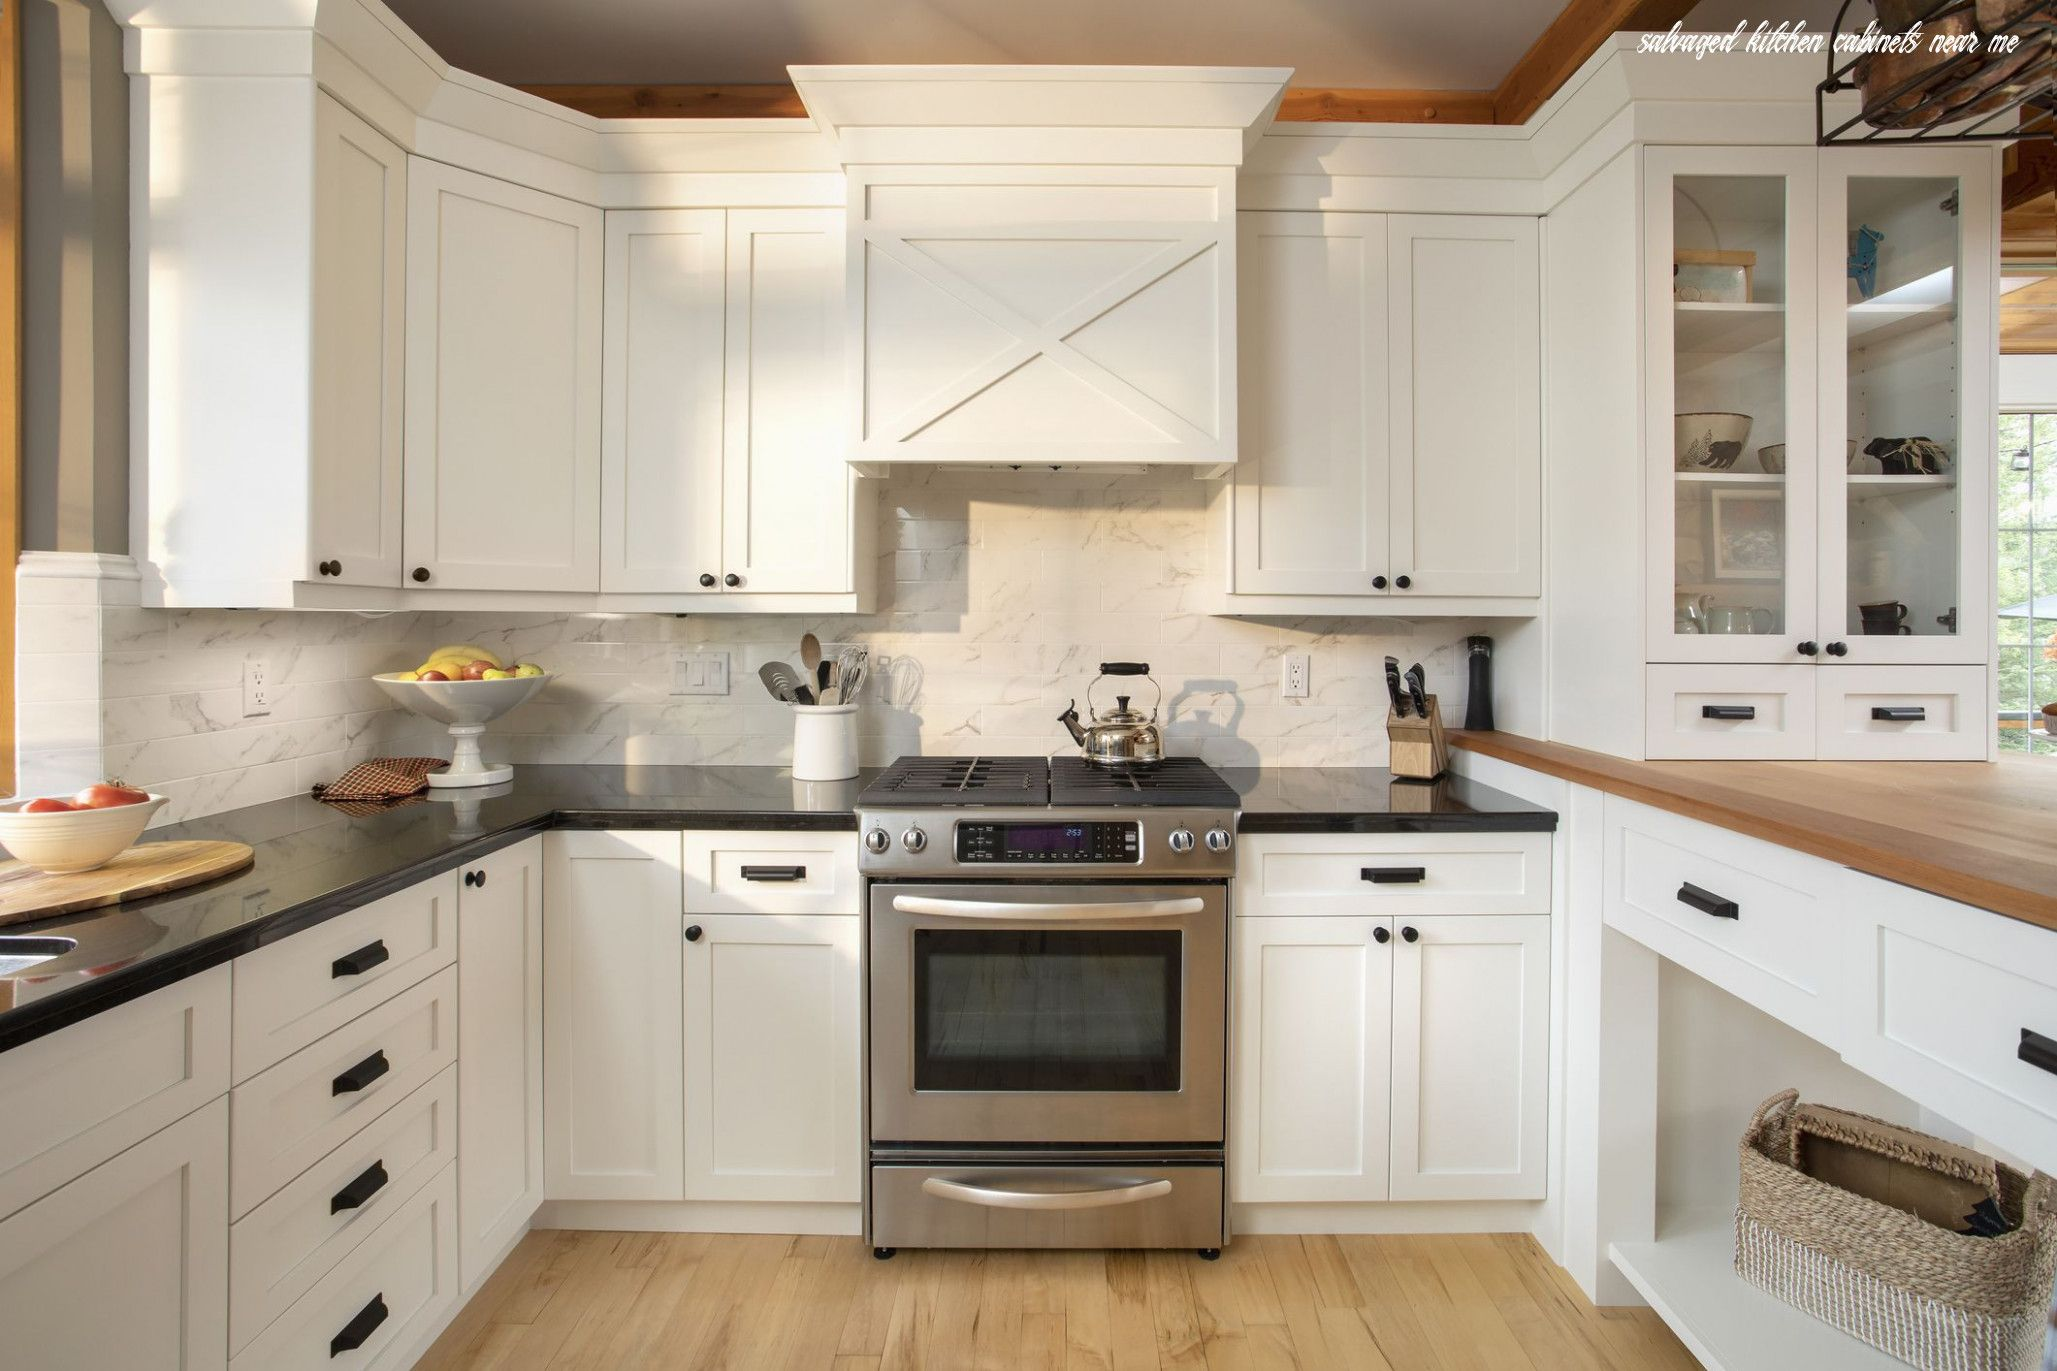 How To Leave Salvaged Kitchen Cabinets Near Me Without Being Noticed In 2020 Used Kitchen Cabinets Kitchen Cabinets For Sale Cheap Kitchen Cabinets